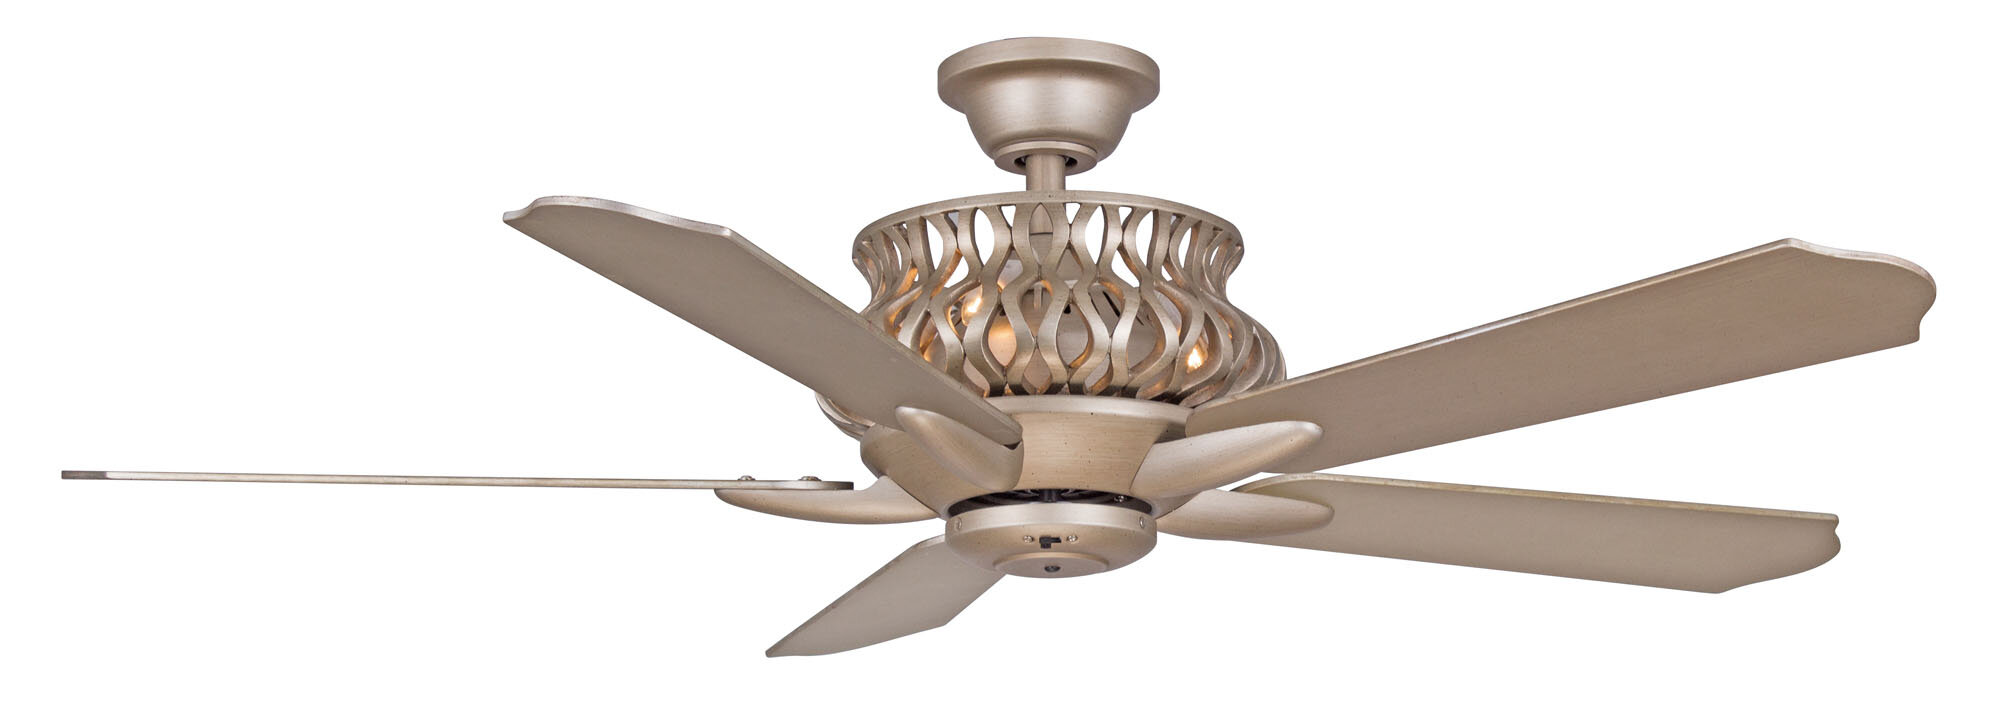 Wayfair Gold Ceiling Fans You Ll Love In 2021